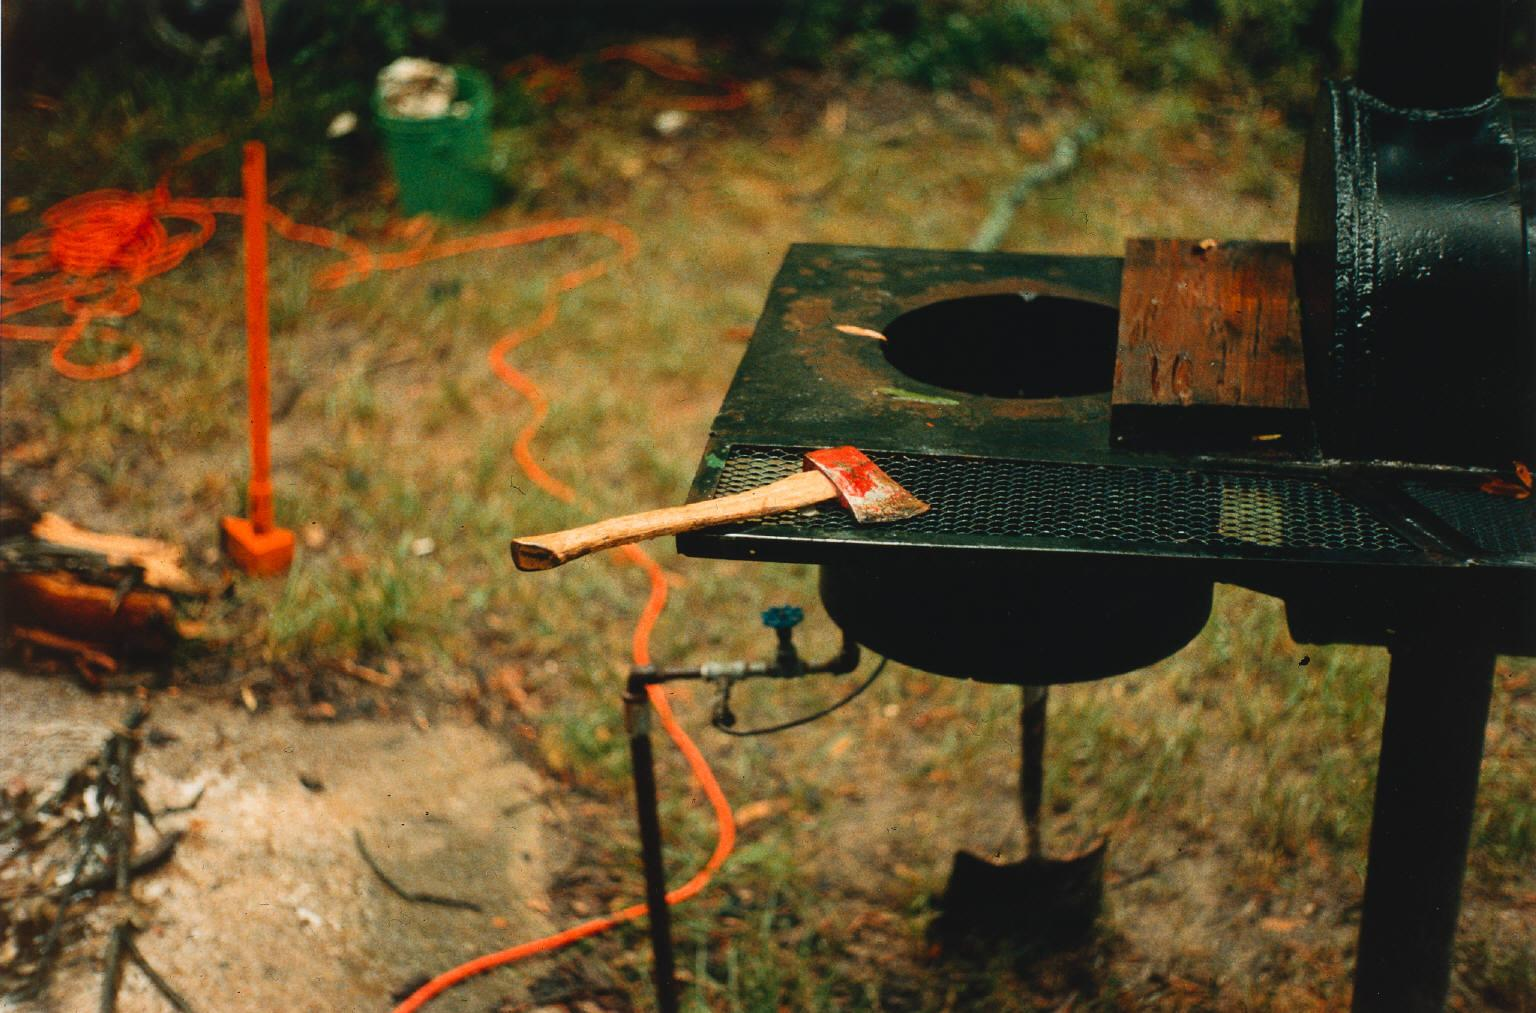 eggleston-1983-1986-s-TheDemocraticForest-axe